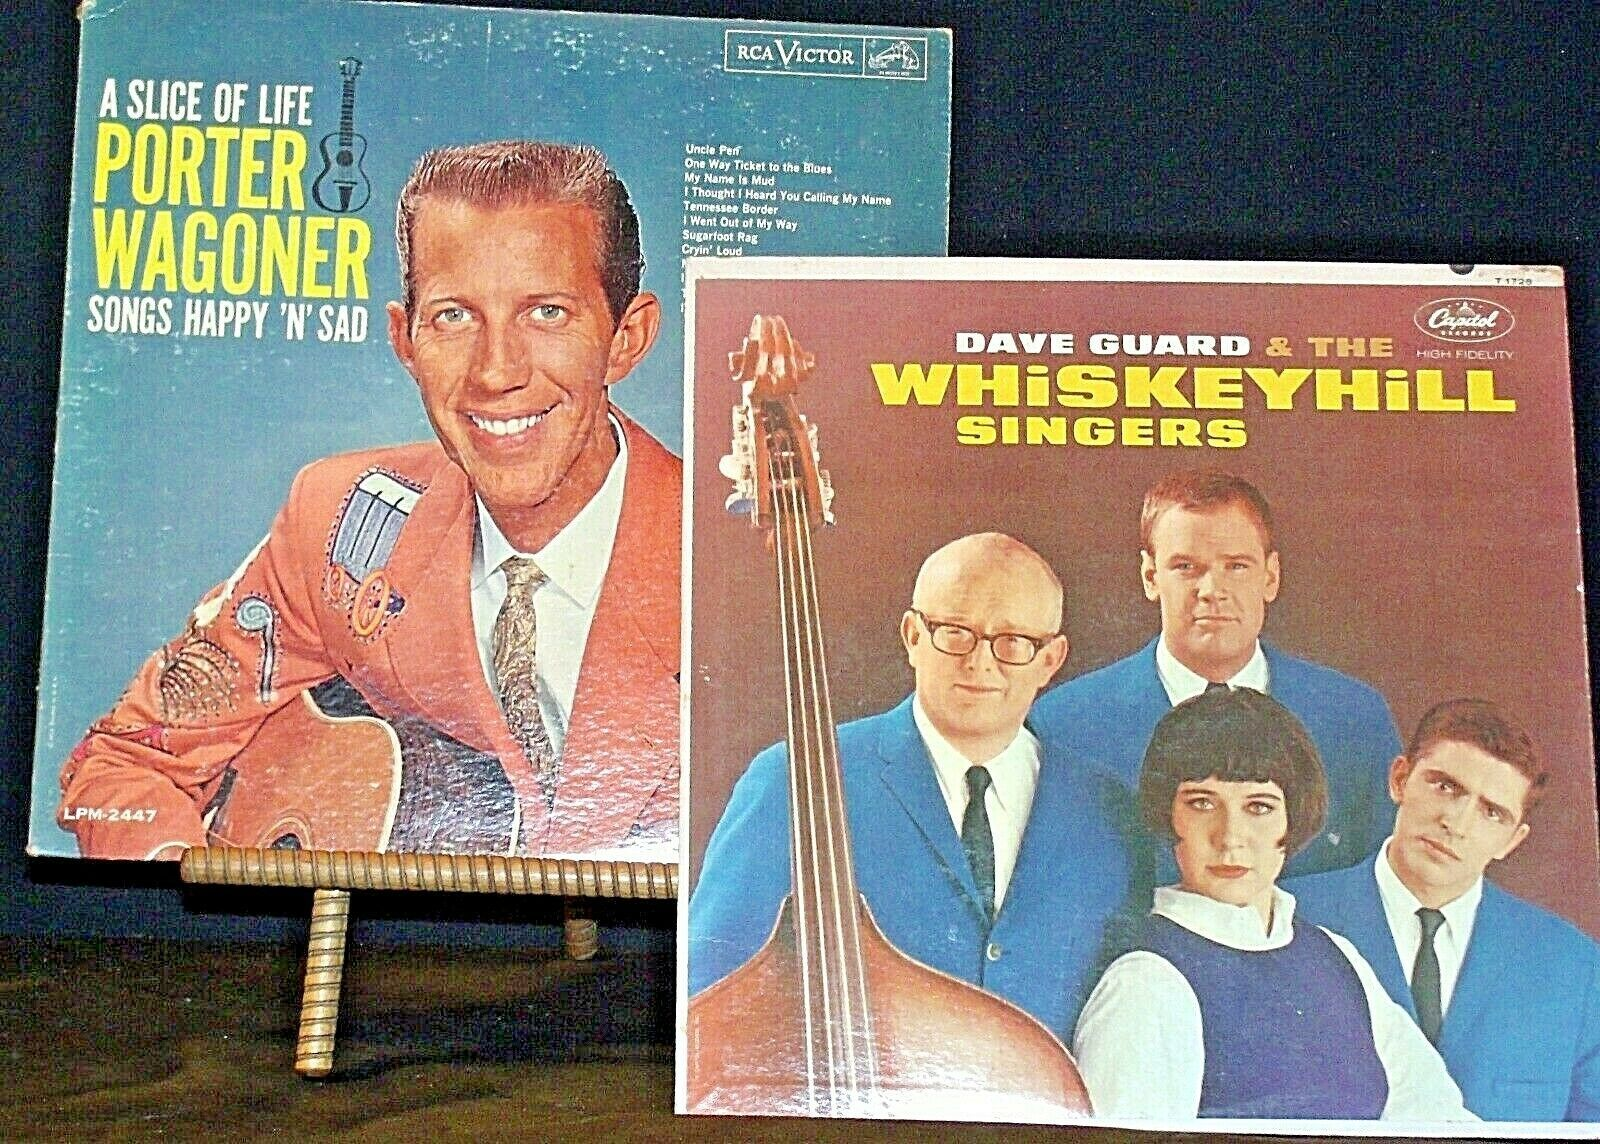 Dave Guard and the WhiskeyHill Singers and A Slice of Life Porter Wagoner AA20-R